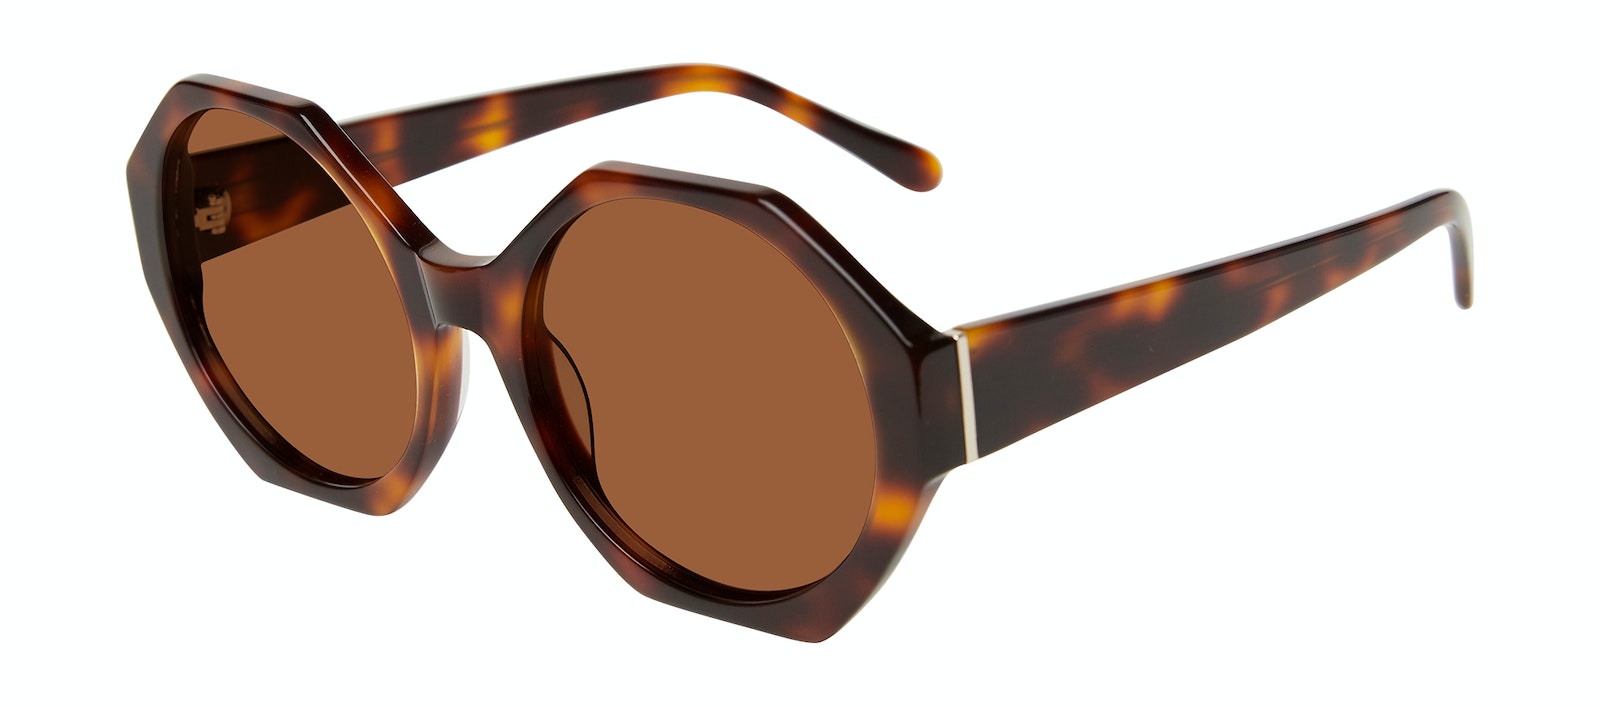 Affordable Fashion Glasses Square Sunglasses Women Zsa Zsa Tortoise Tilt